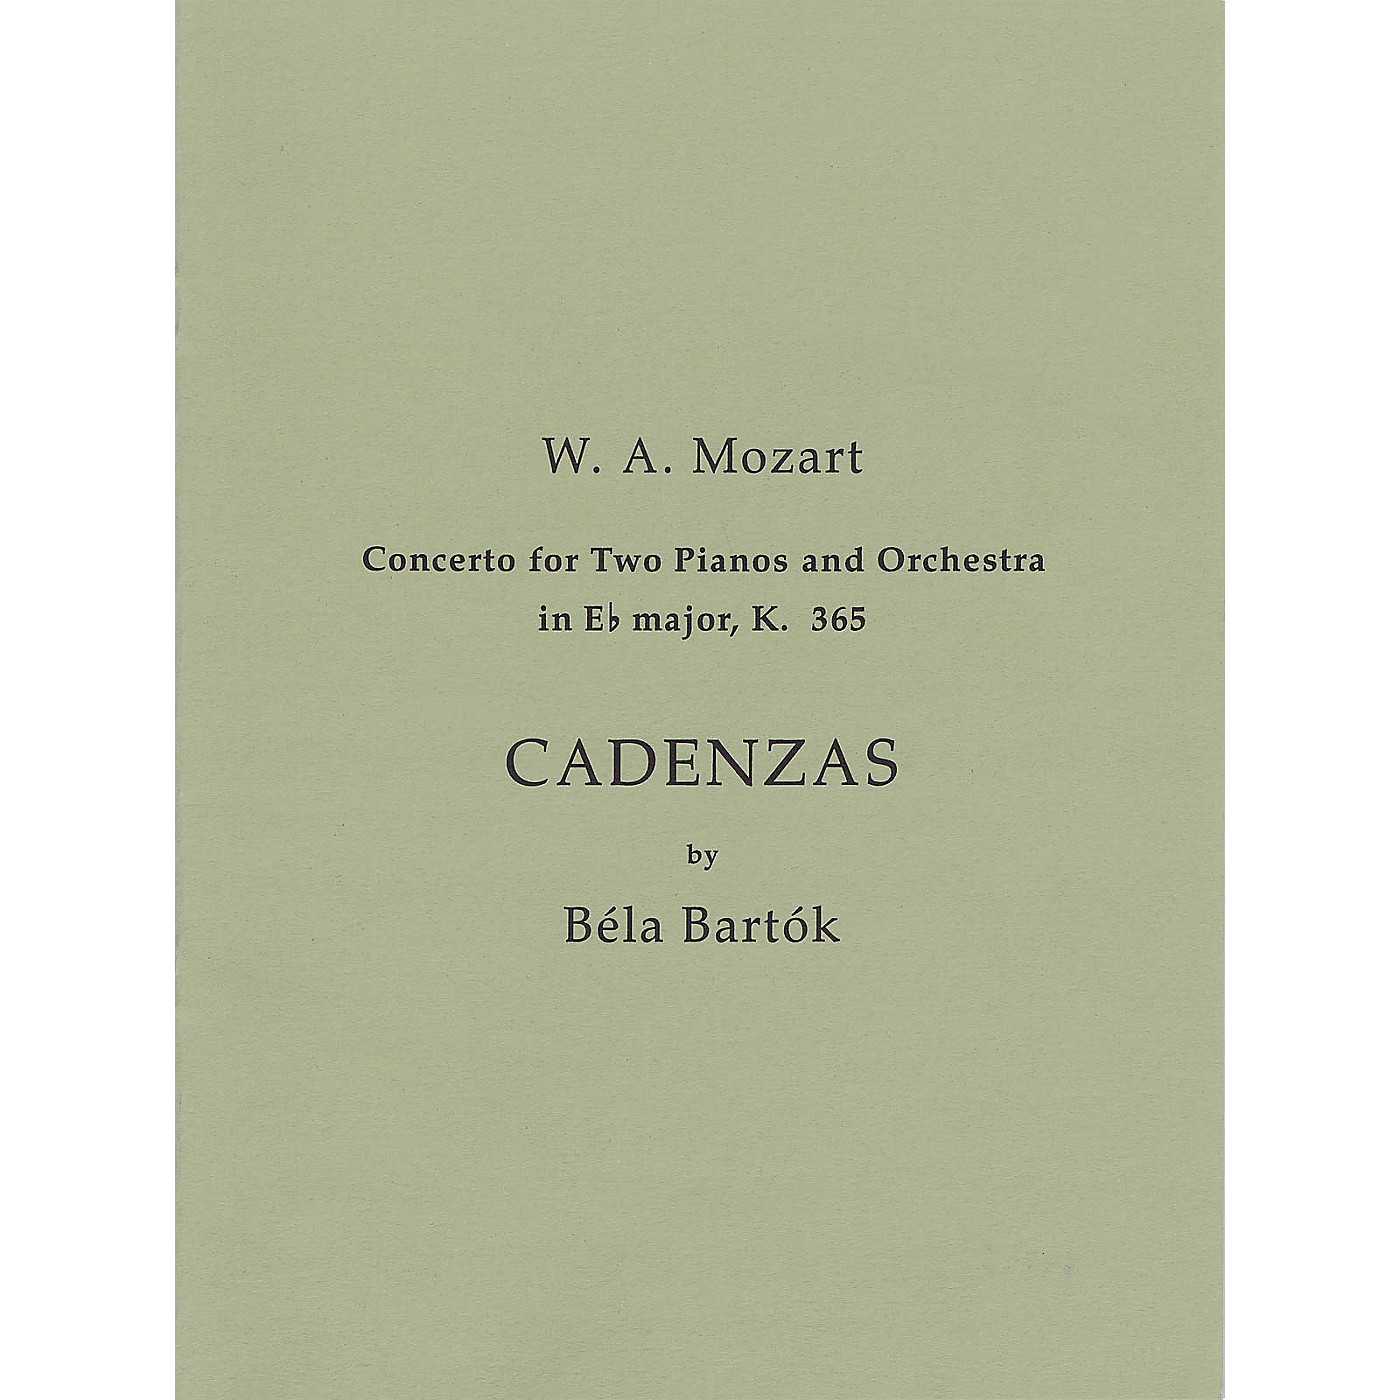 Bartók Records and Publications Cadenzas to Mozart's Concerto for 2 Pianos and Orchestra in E Flat Major, K. 365 Misc by Bela Bartok thumbnail